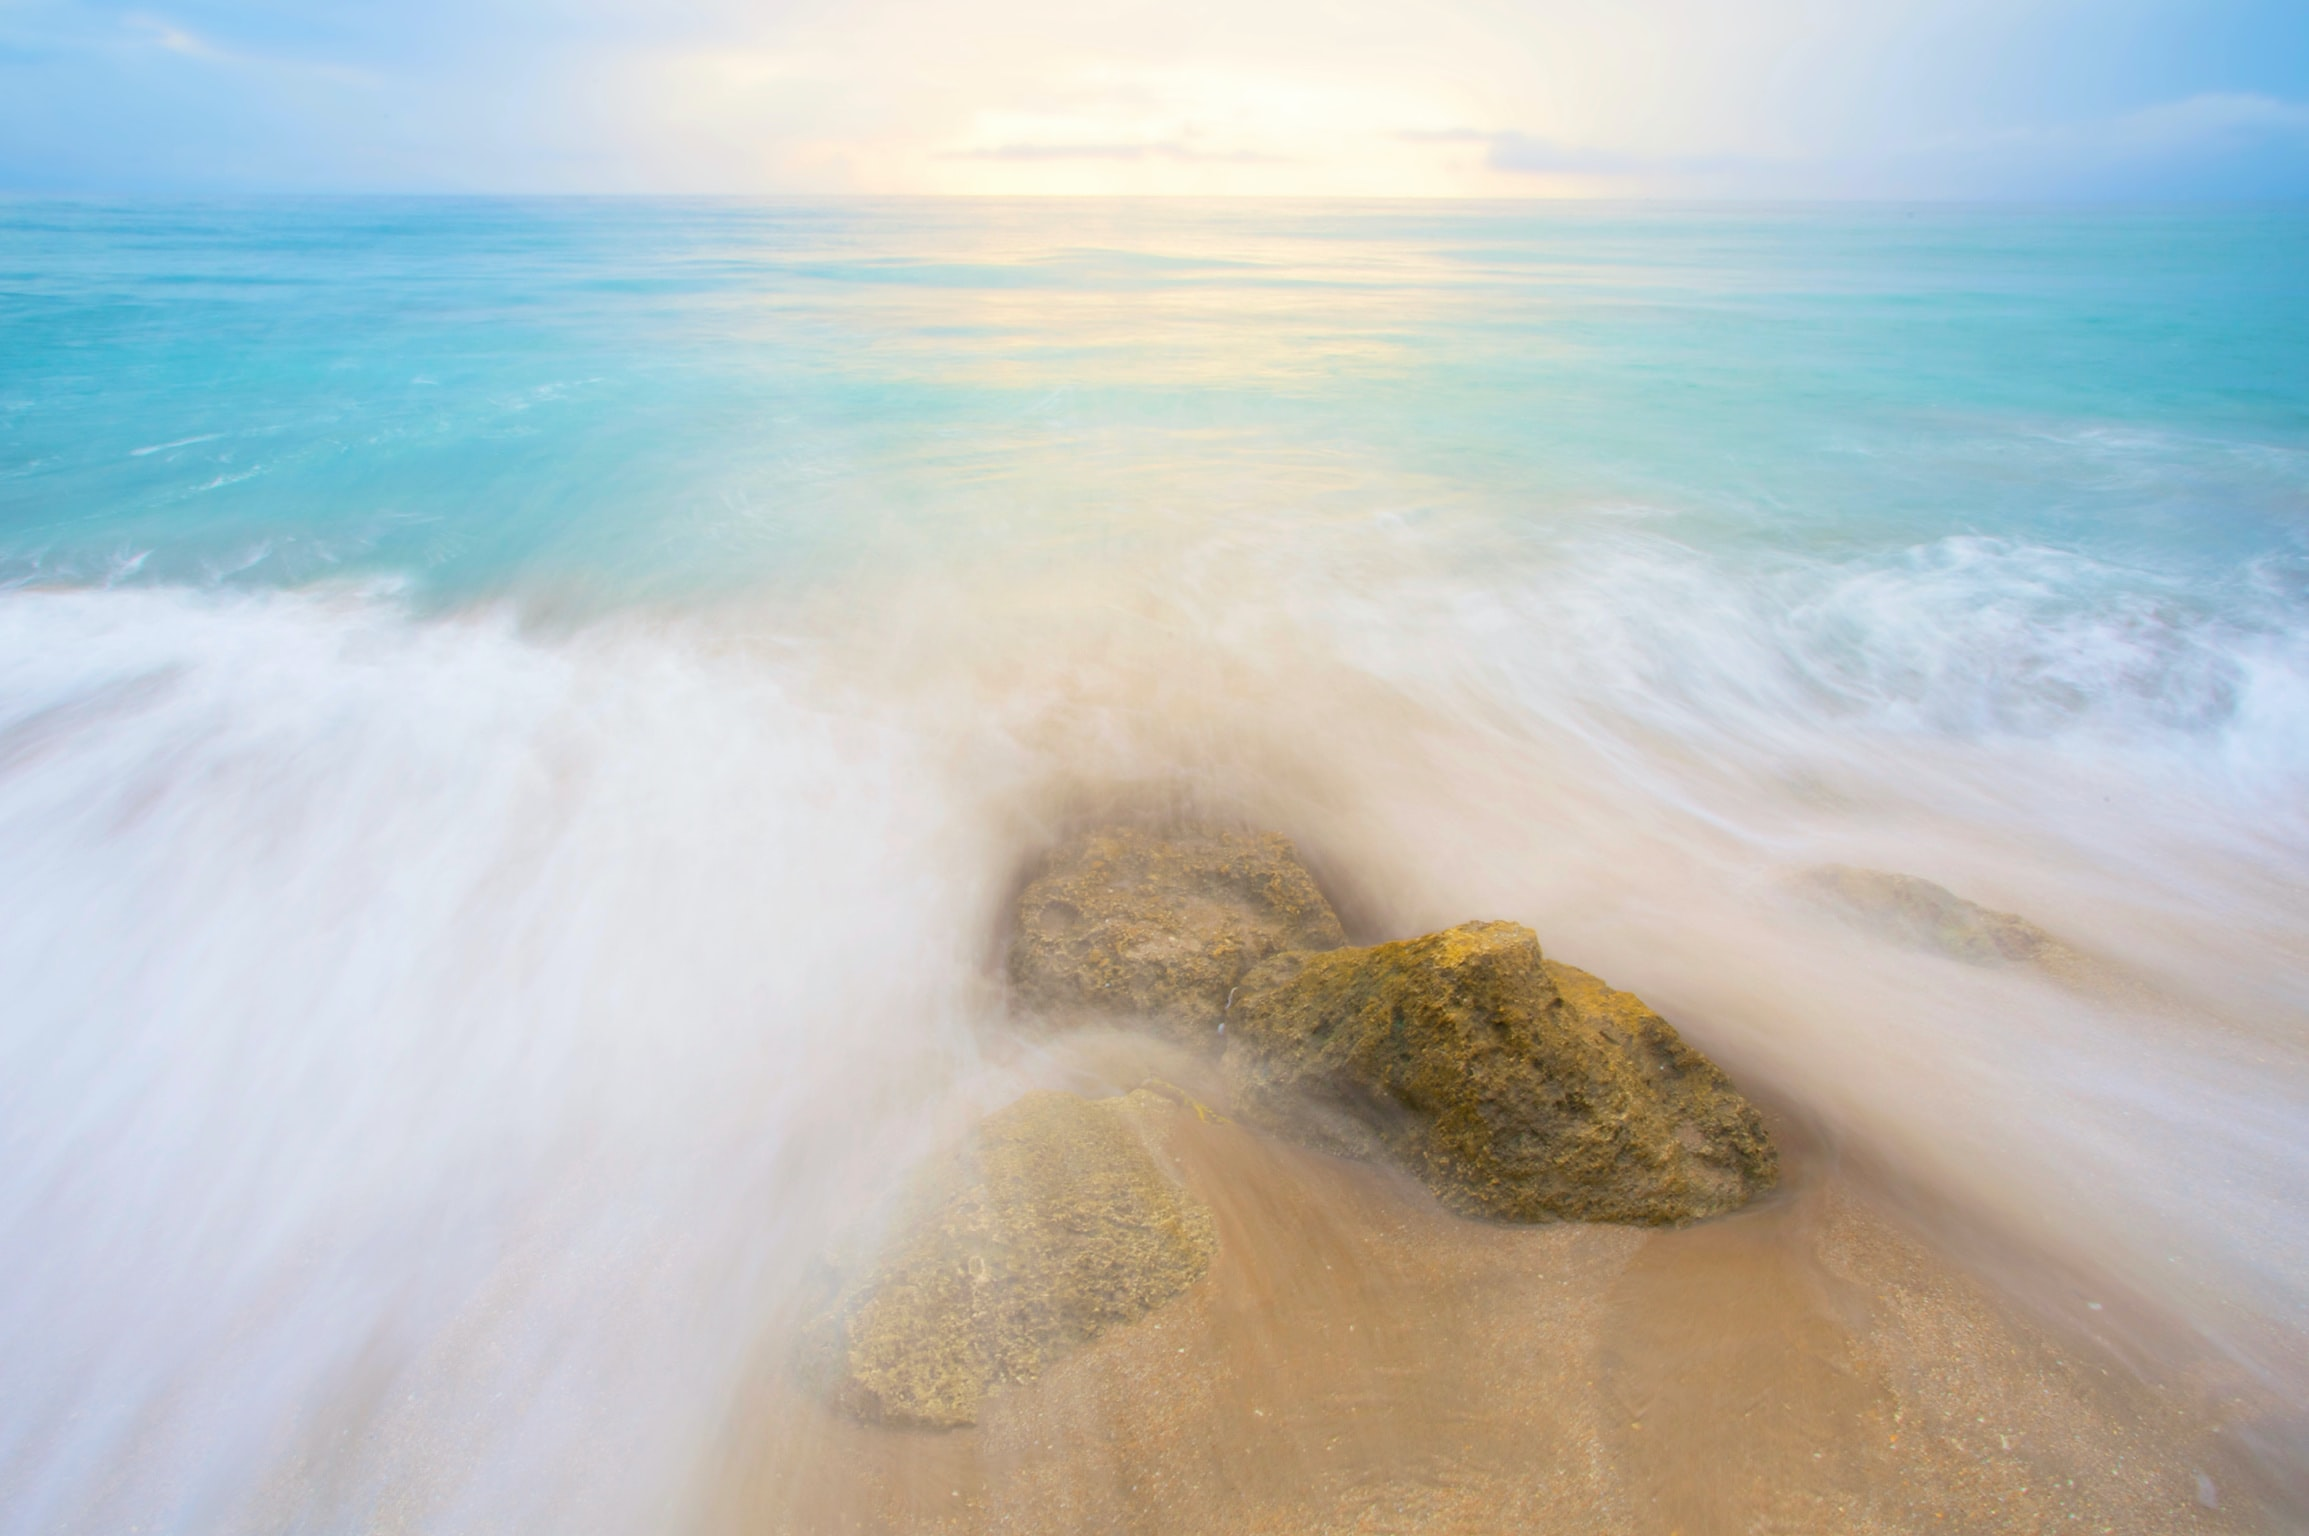 ocean waves during day